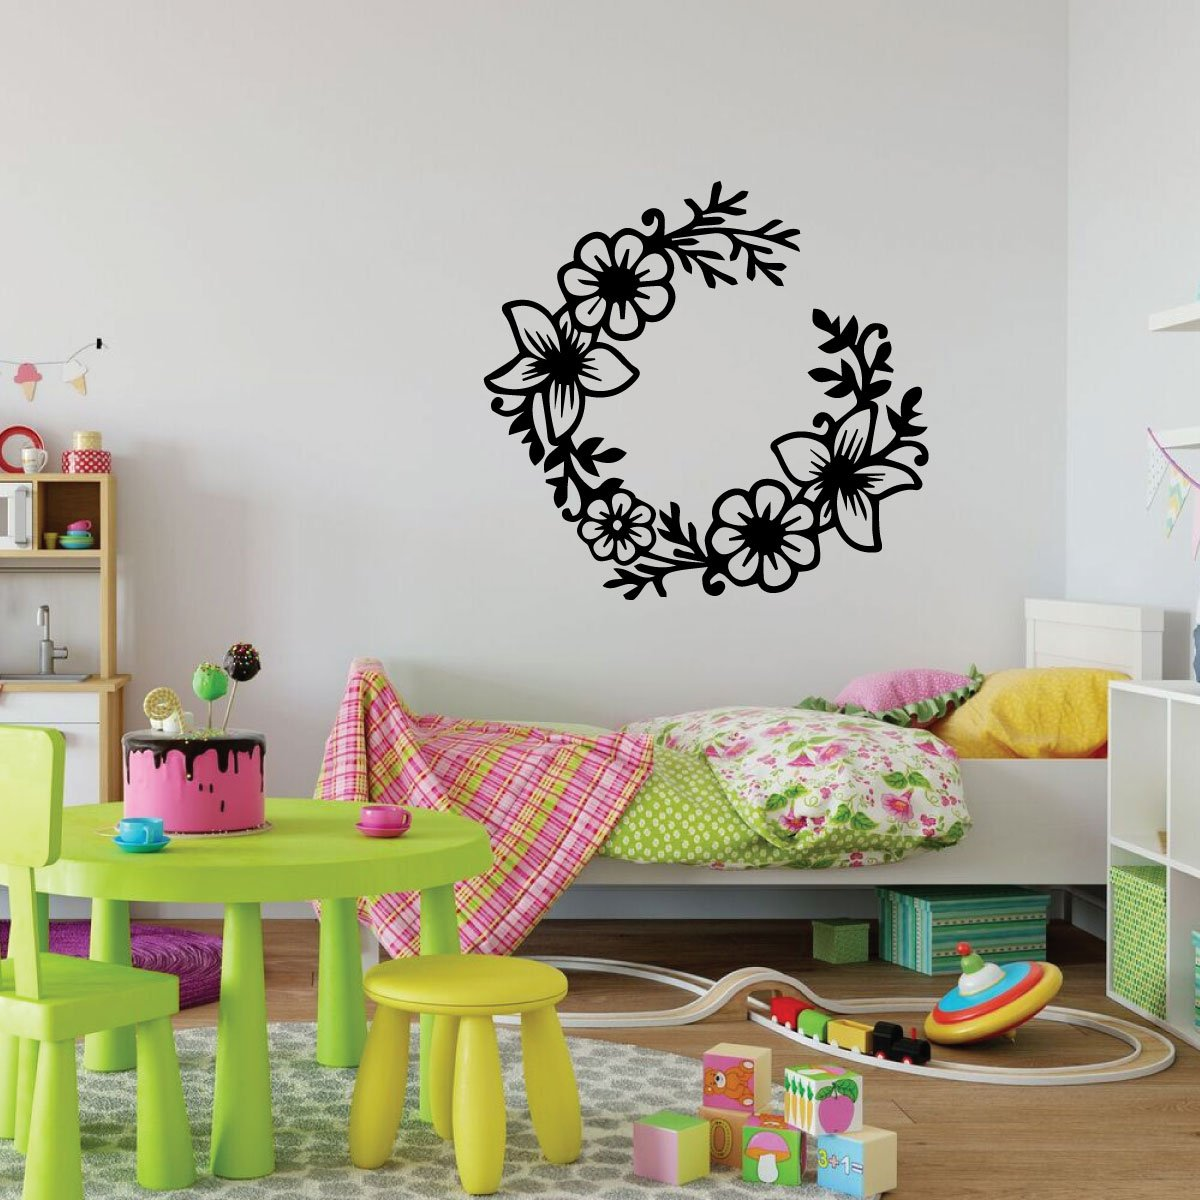 Girls Bedroom Flower Wreath Design Vinyl Decor Wall Decal